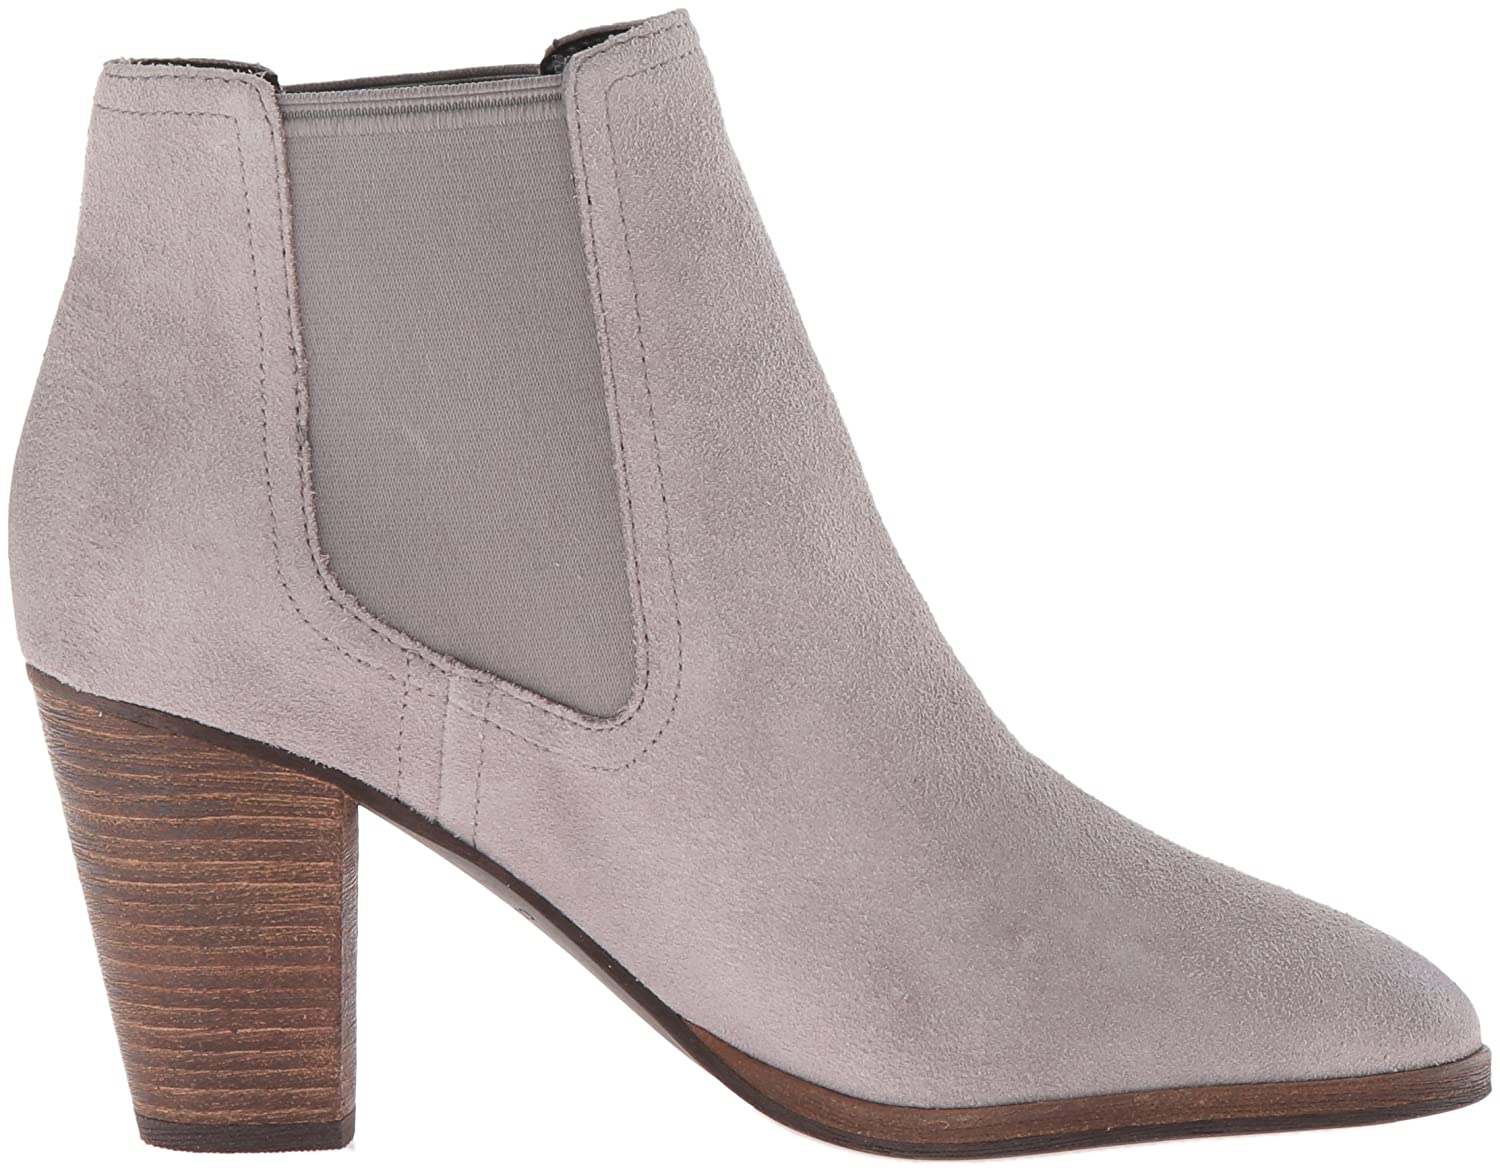 Cole Haan Women's Hayes Gore Ankle Bootie B01FX5B21C 7.5 W US|Ironstone Suede